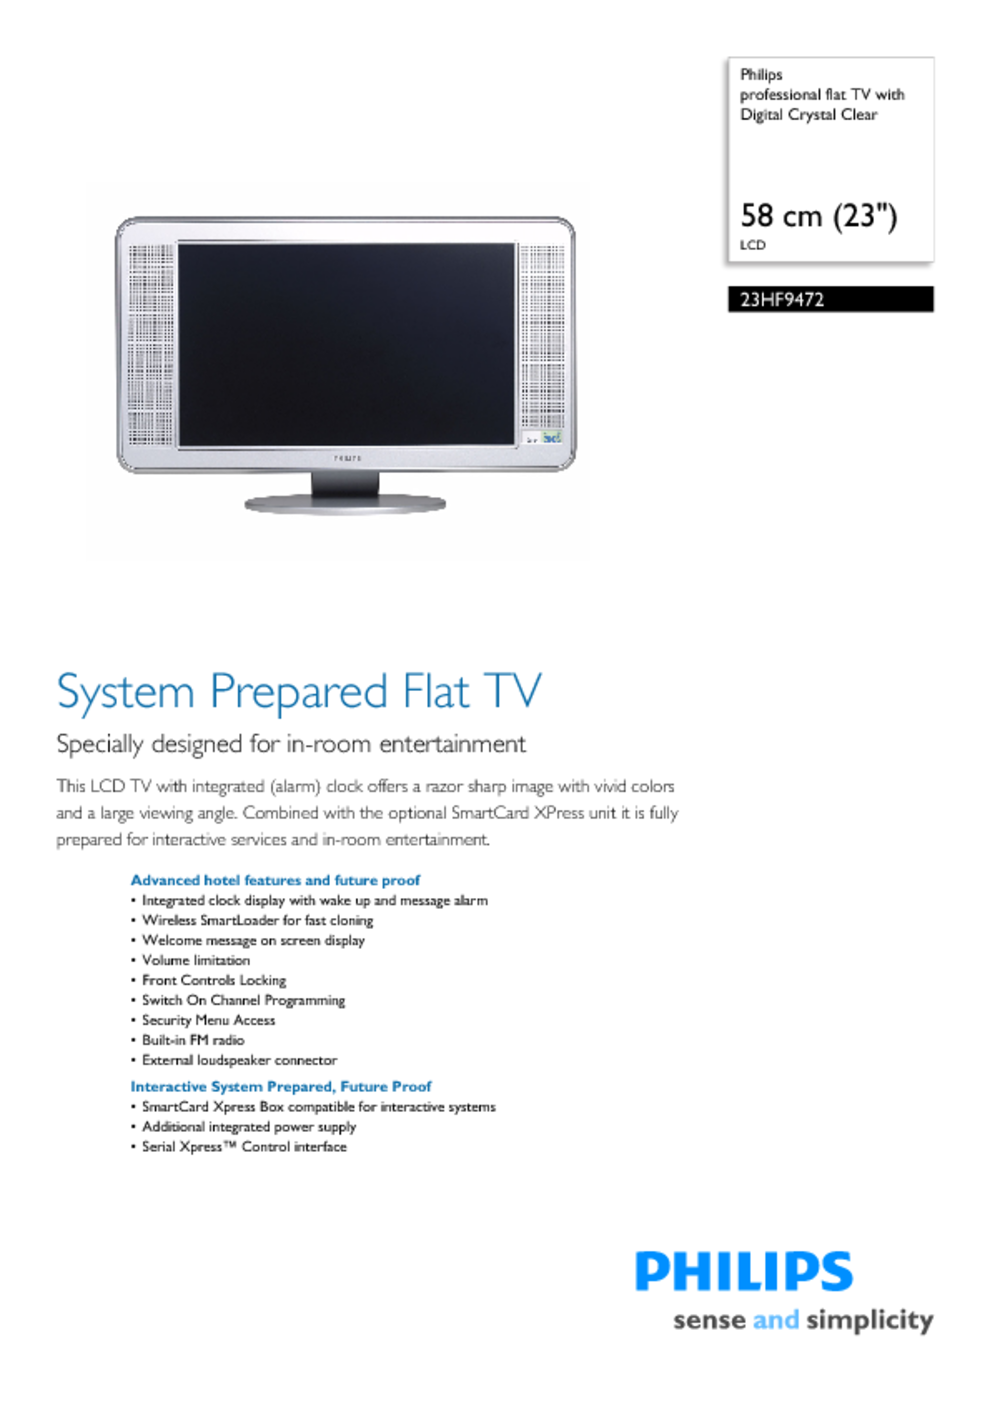 flat panel television users guides flat panel television page 353 rh usersmanuals1 com Philips Universal Remote Control Manual Philips Universal Remote Control Manual